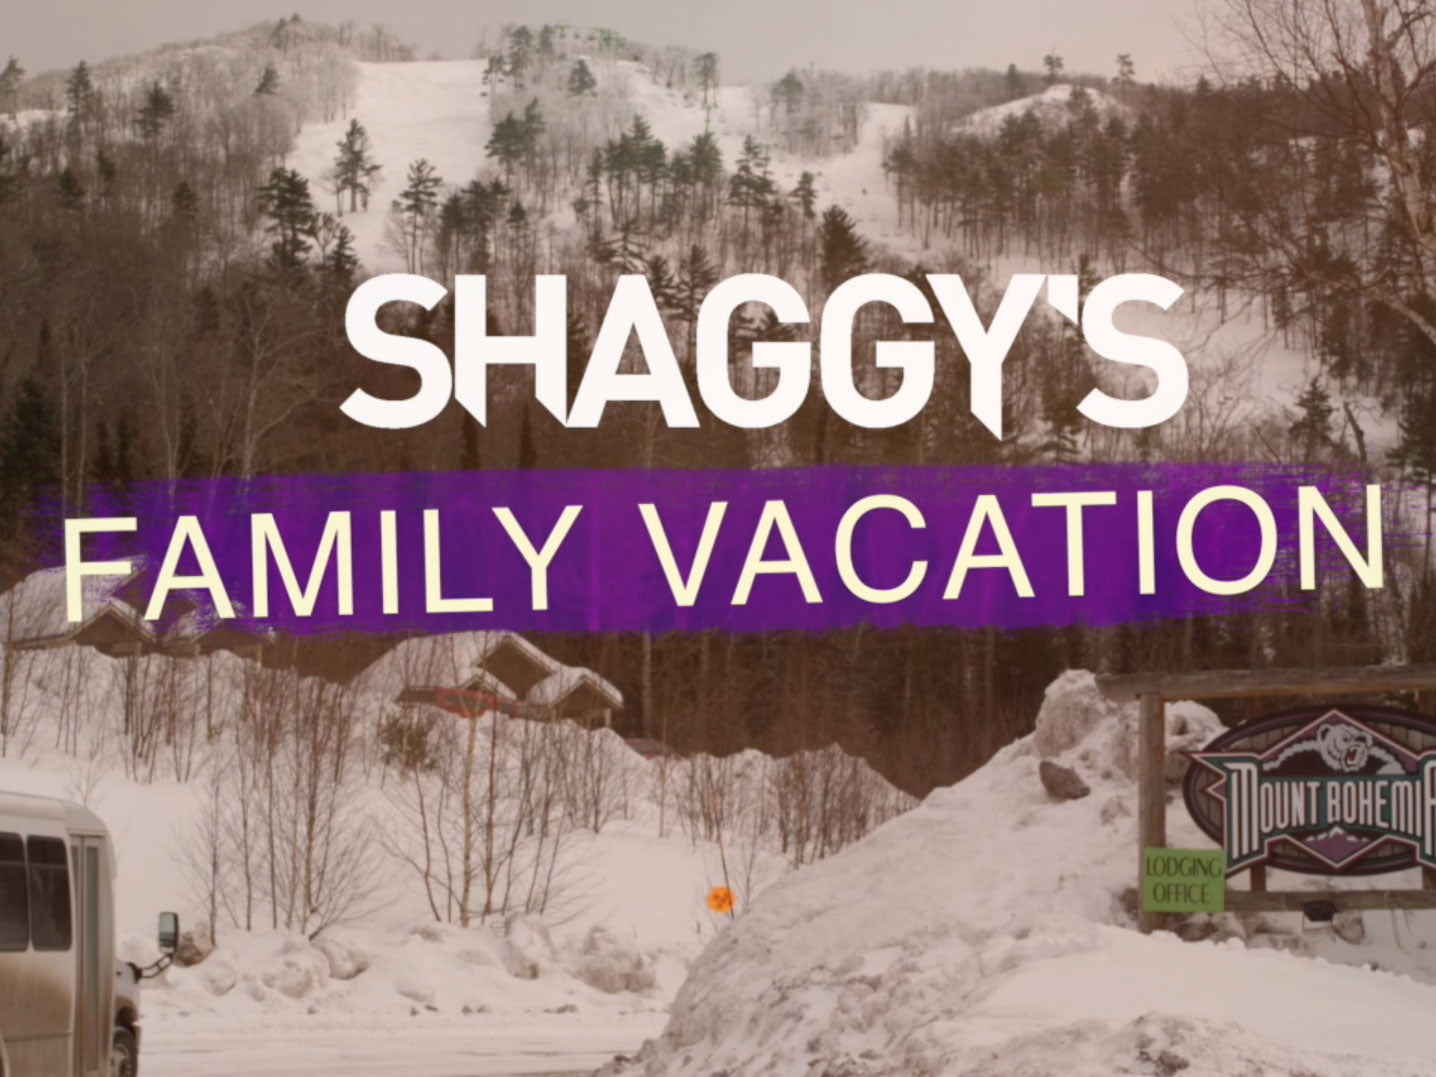 RECAP: Shaggy's Family Vacation at Mount Bohemia